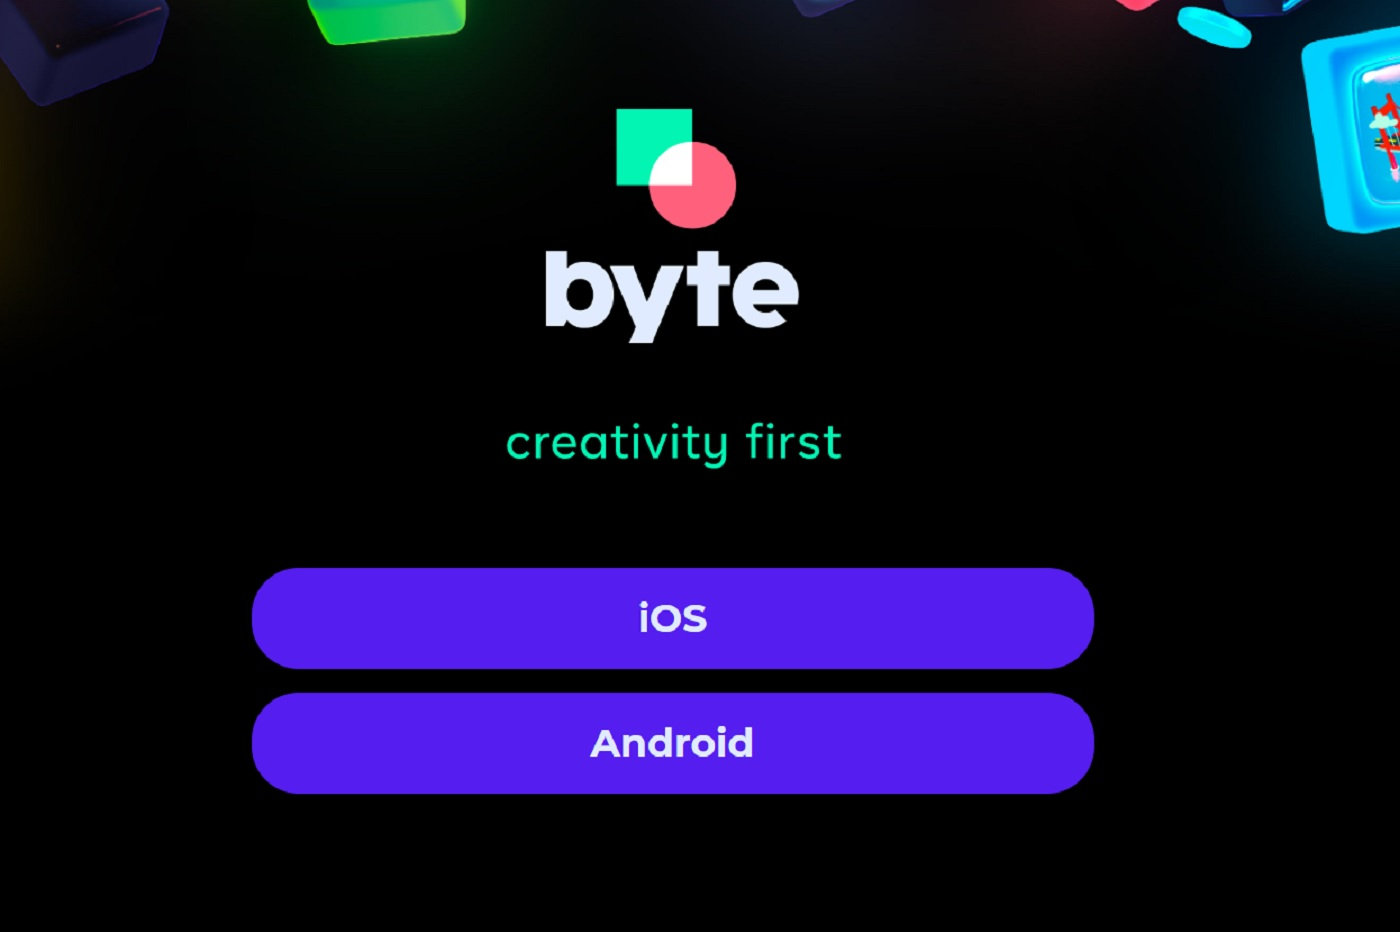 Byte application